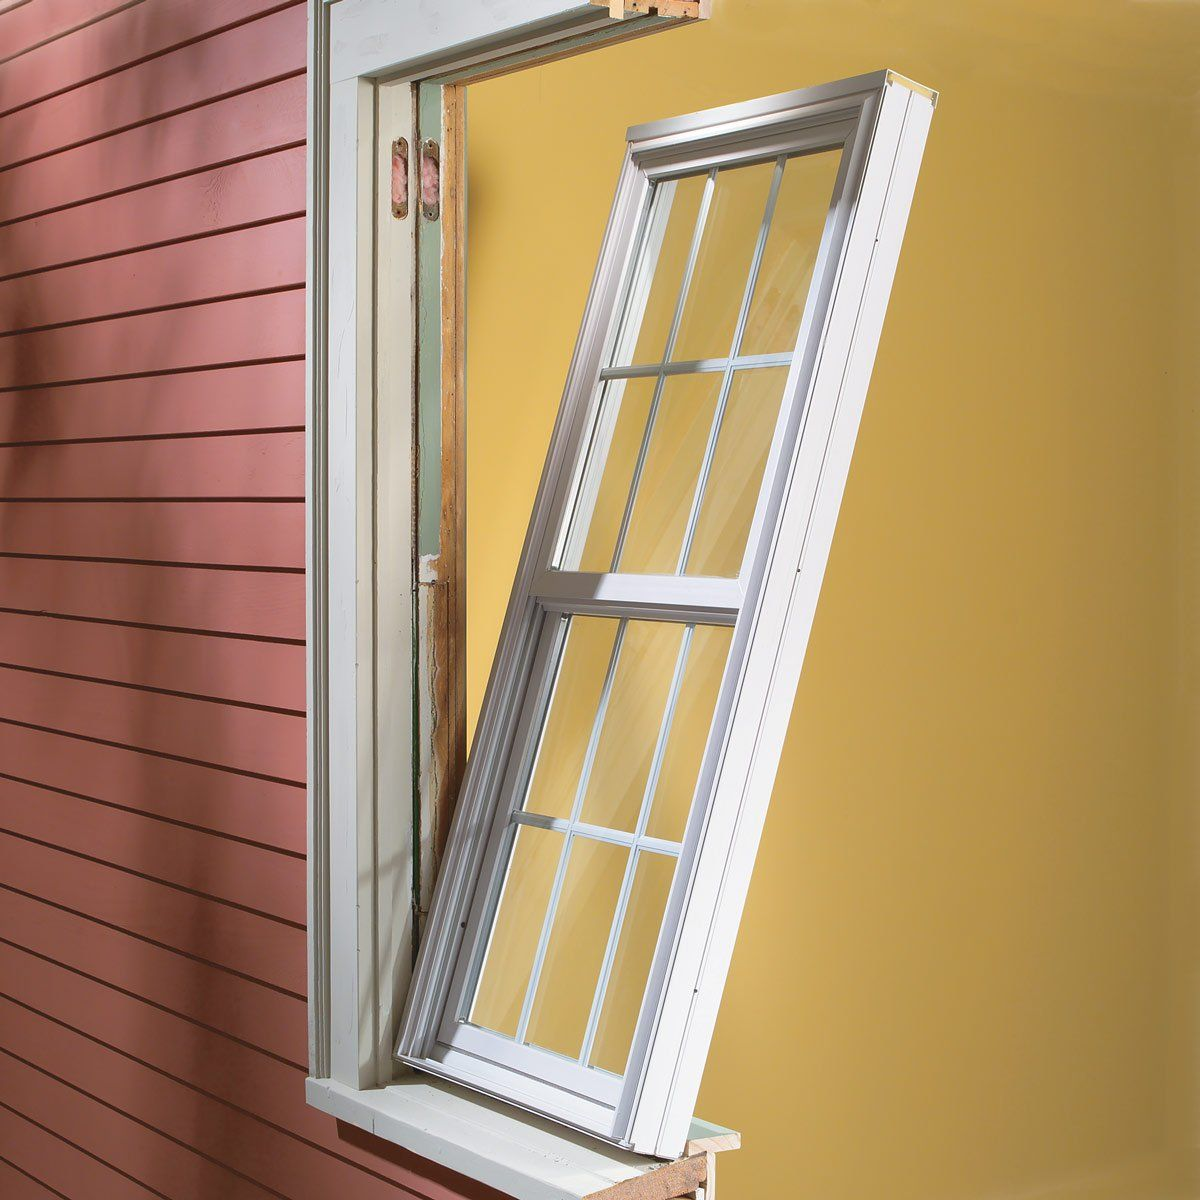 How To Install Vinyl Replacement Windows Vinyl Replacement Windows Window Replacement Installing Replacement Windows